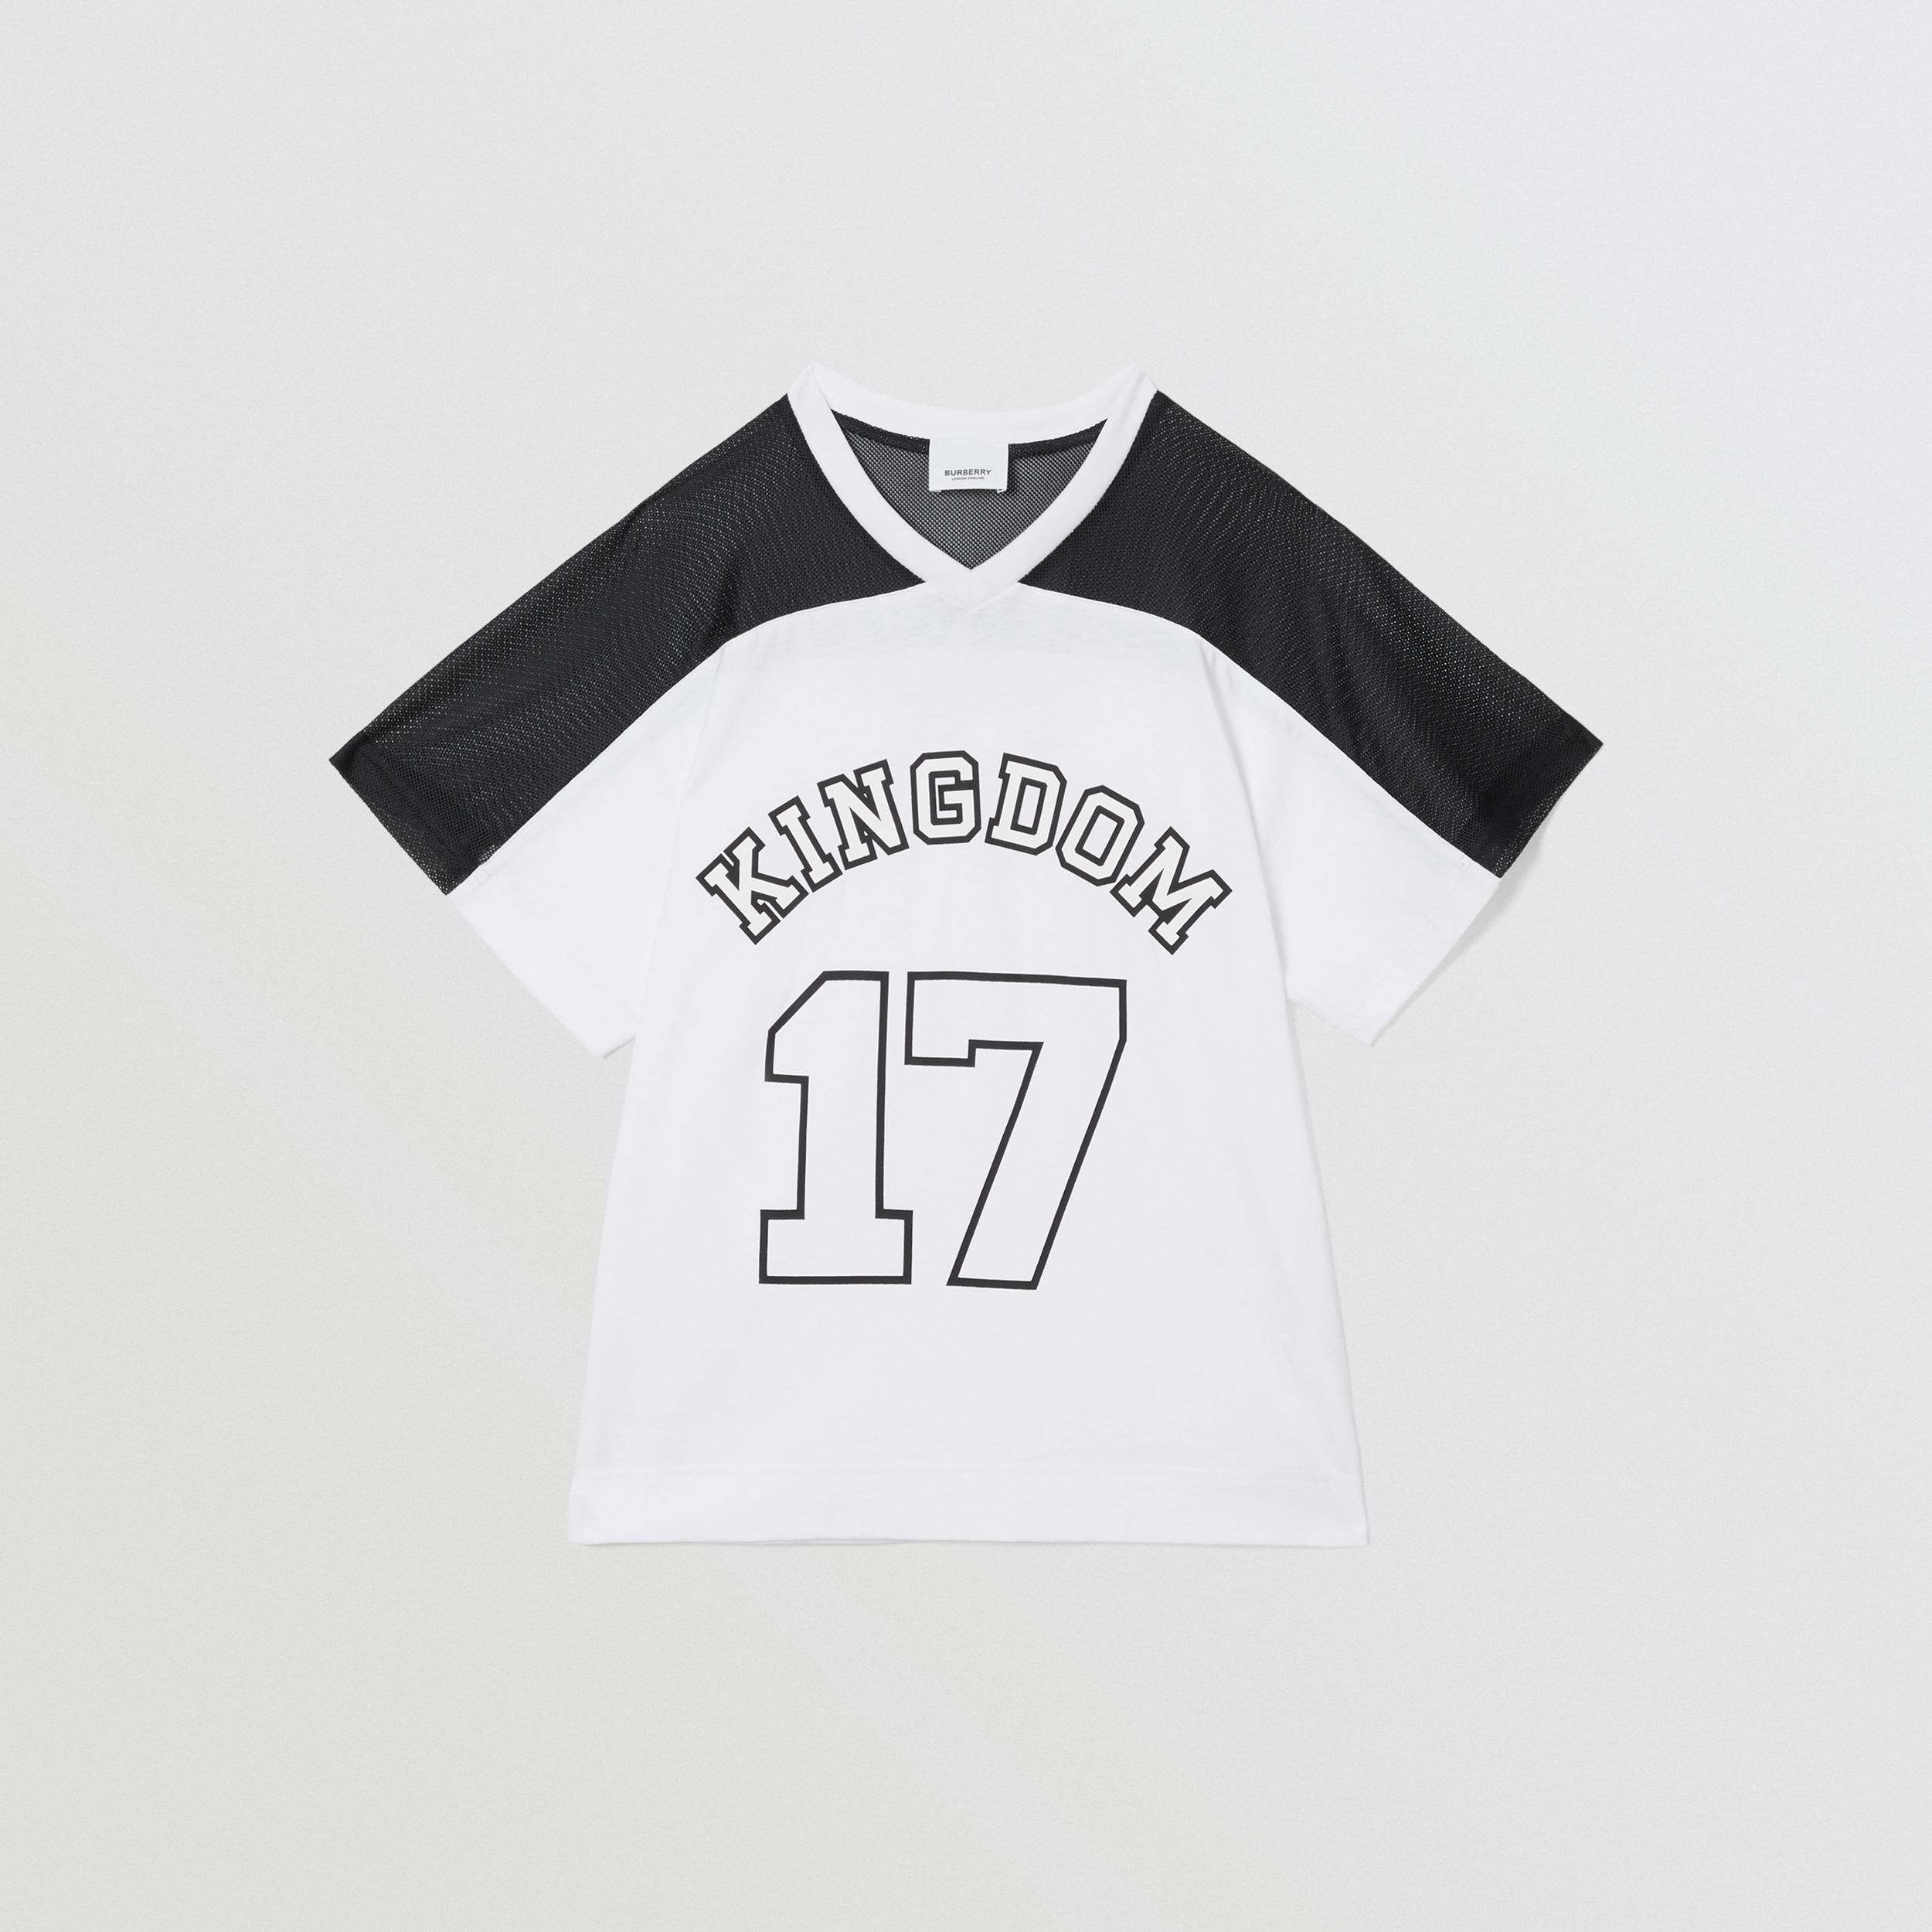 Mesh Panel Kingdom Print Cotton T-shirt in Black | Burberry - 1